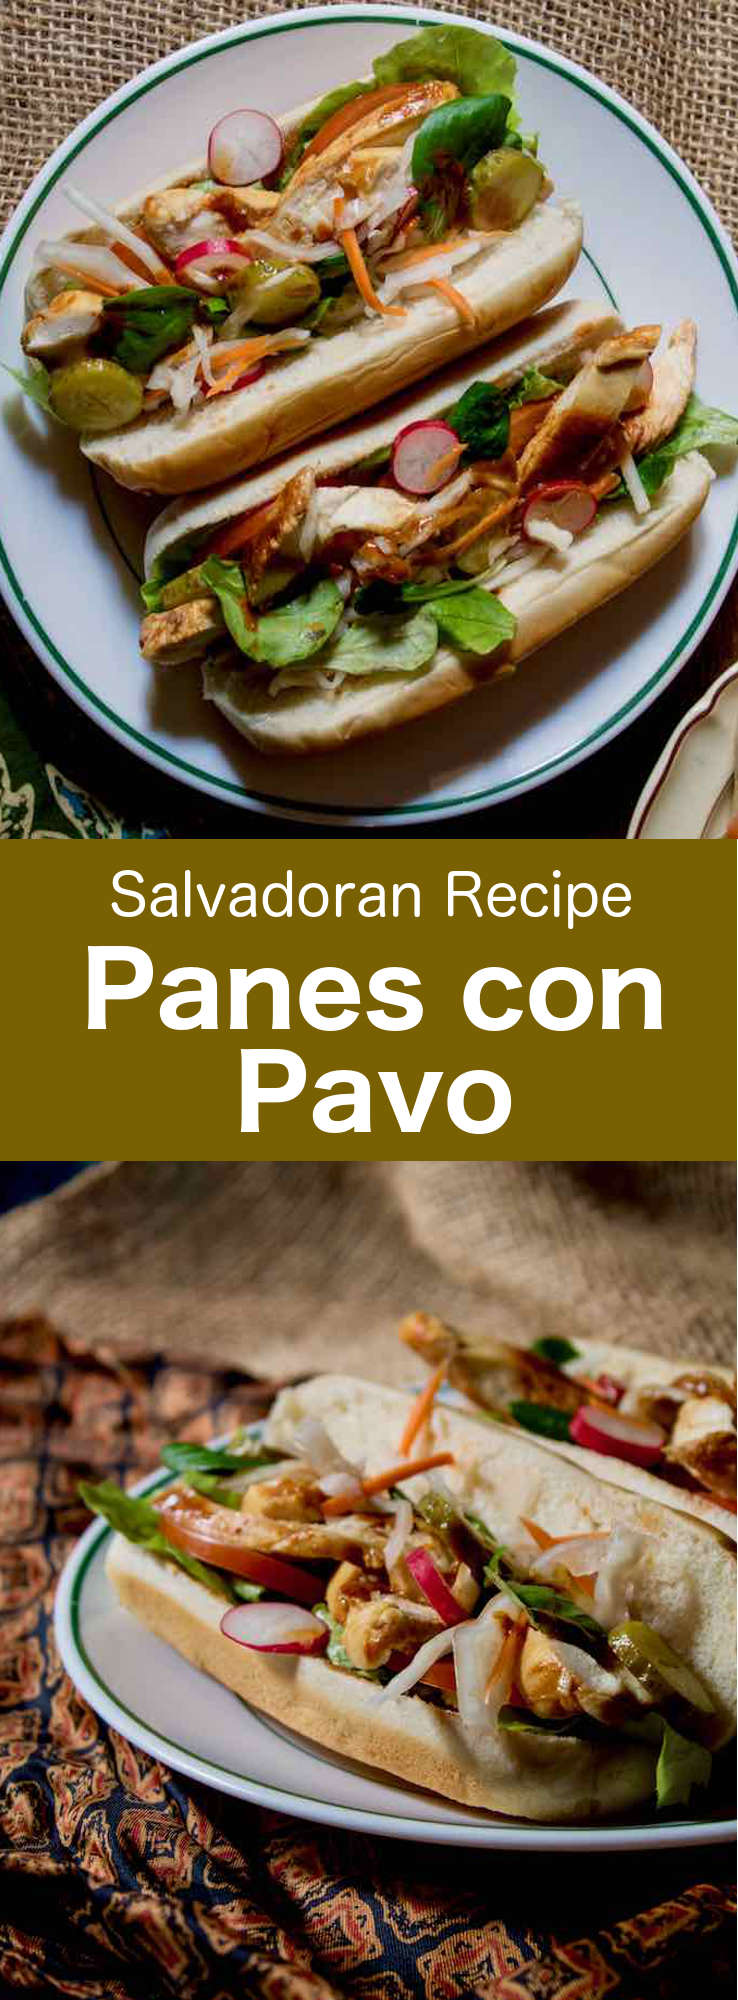 Panes con pavo is a popular traditional Salvadoran sandwich prepared with roasted turkey and its sauce, as well as raw and pickled vegetables. #CentralAmericanCuisine #CentralAmericanRecipe #SalvadoranCuisine #SalvadoranRecipe #WorldCuisine #196flavors